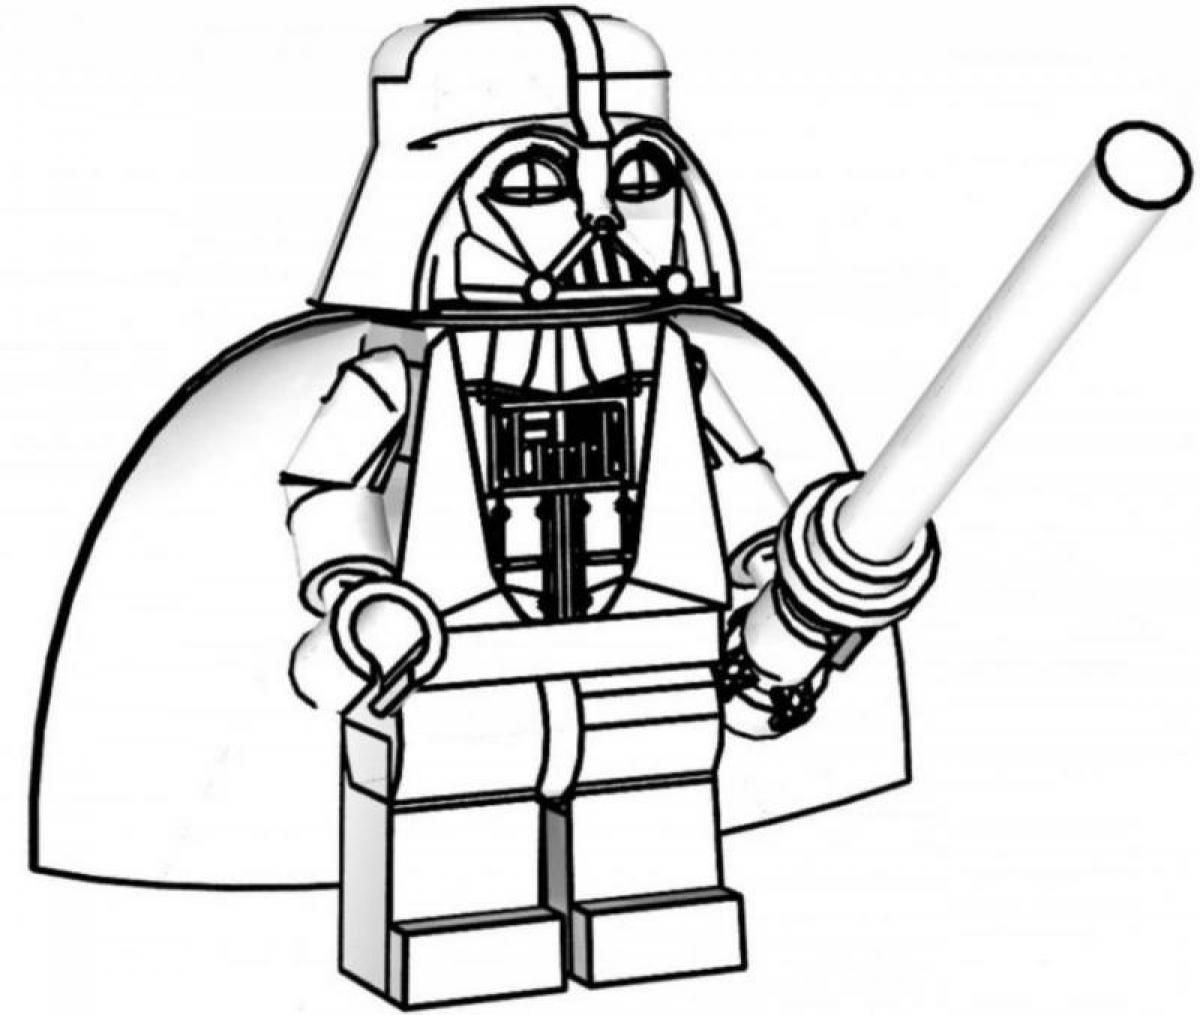 Yoda Clipart Black And White Free Download Best Yoda Clipart Black